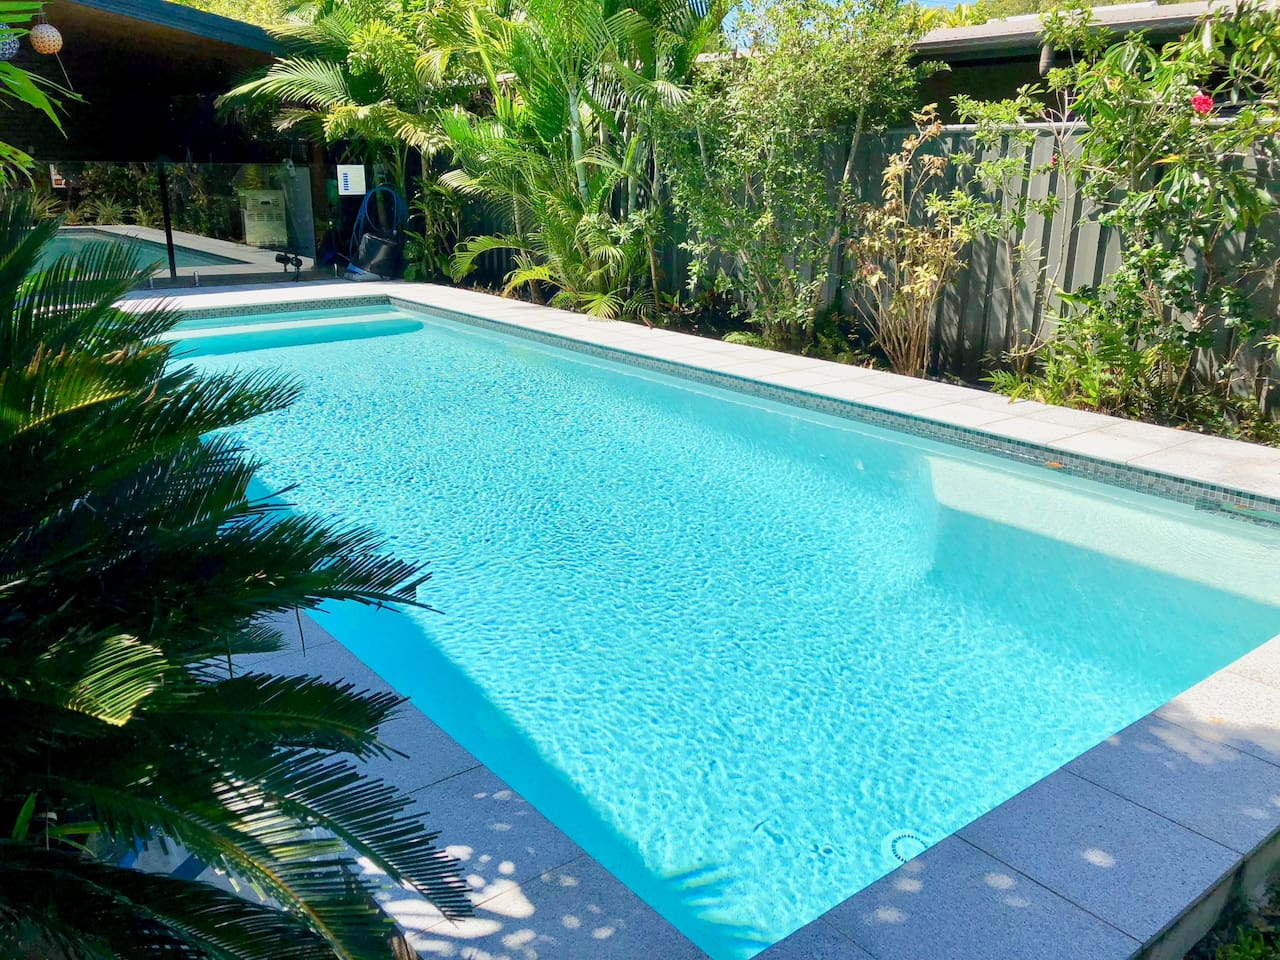 Enjoy the tropical mineral pool